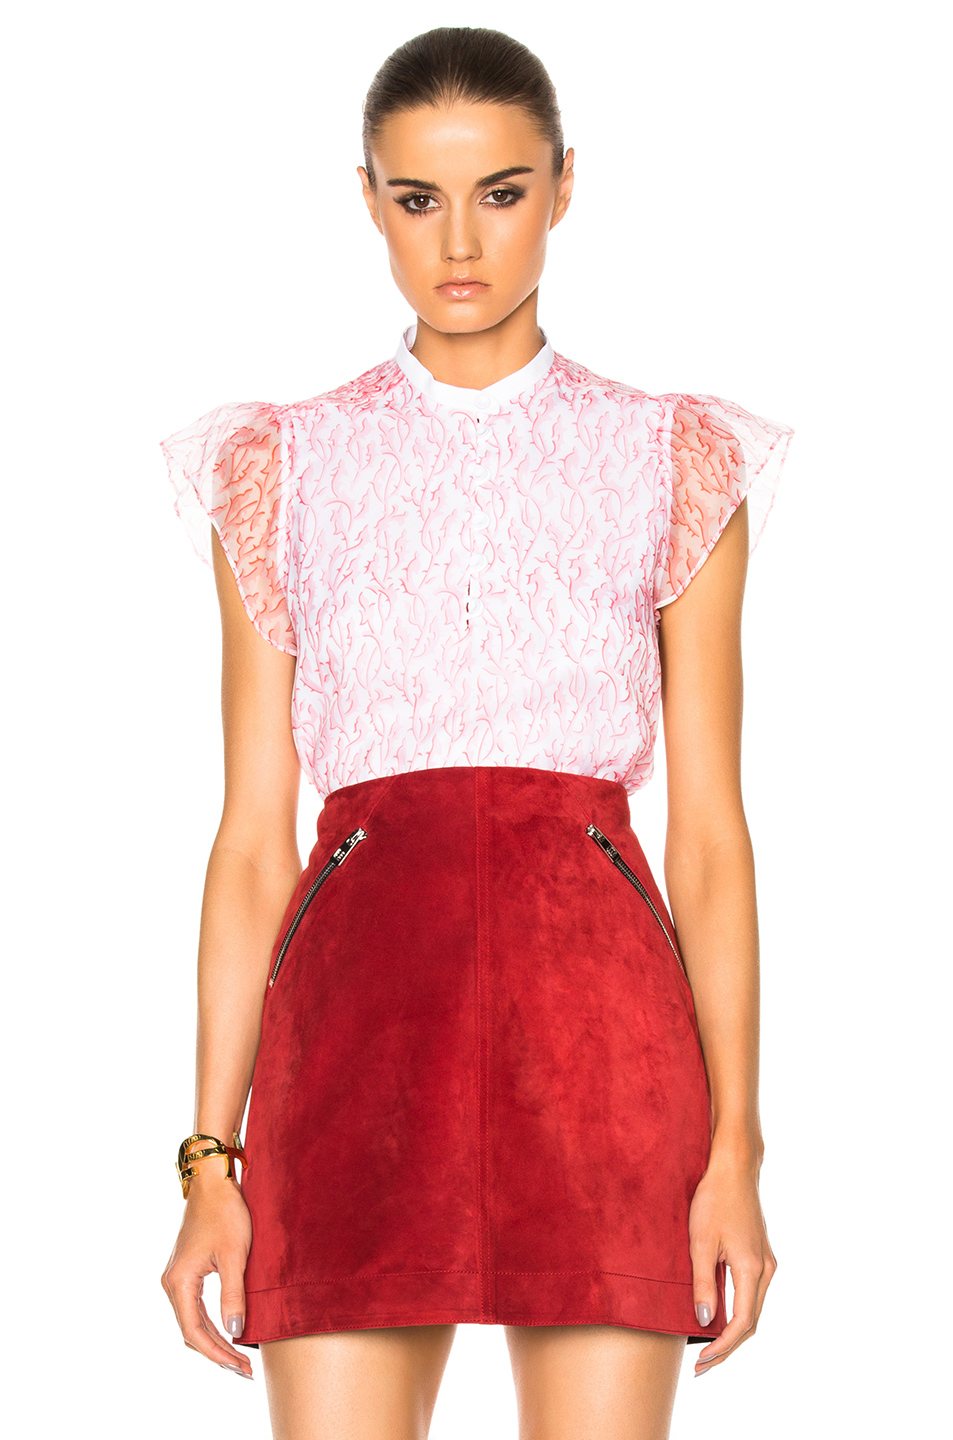 Carven Short Sleeve Top in Pink,Abstract